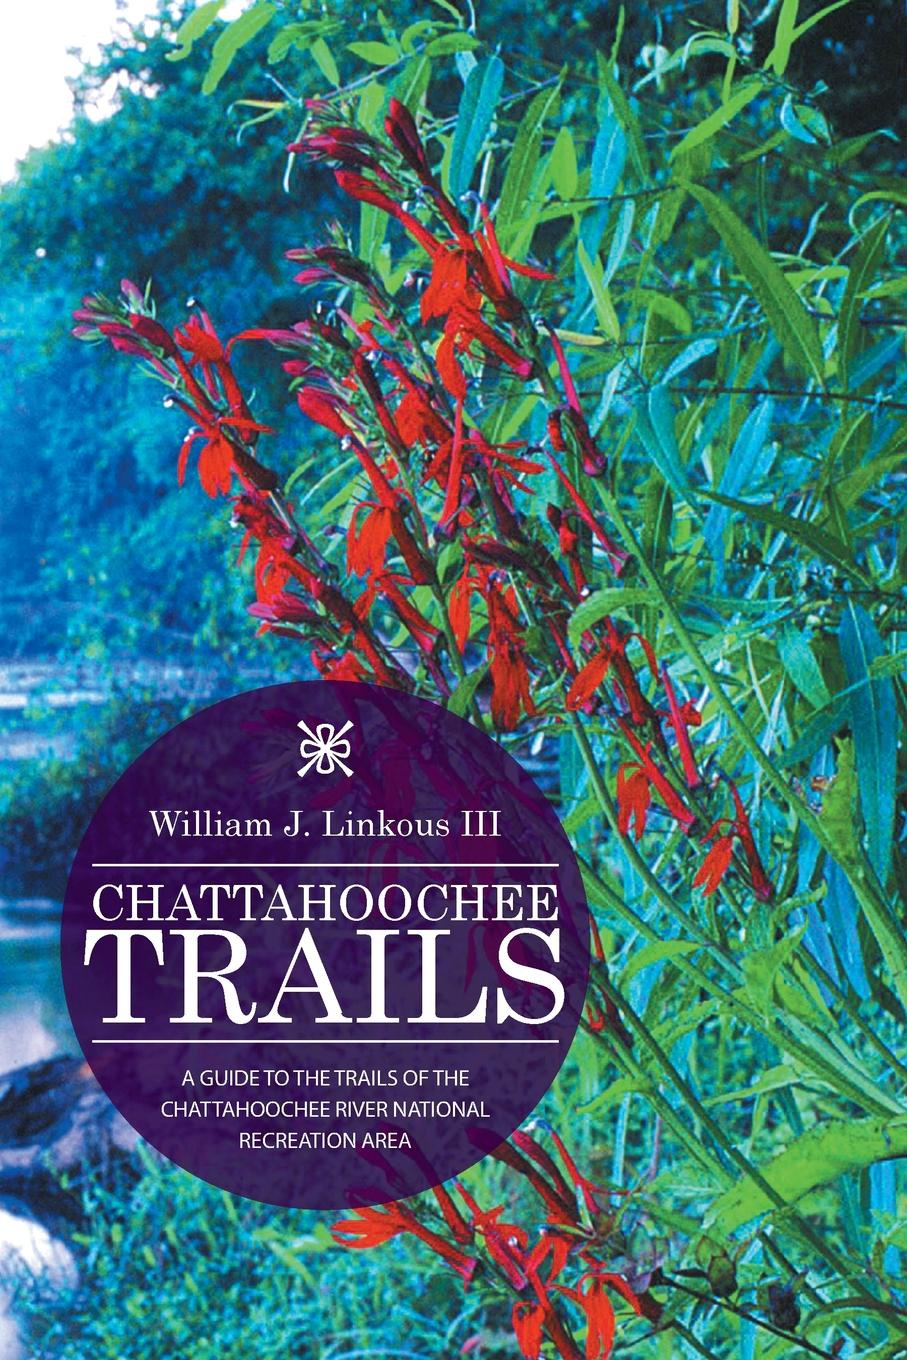 William J. Linkous III CHATTAHOOCHEE TRAILS. A GUIDE TO THE TRAILS OF THE CHATTAHOOCHEE RIVER NATIONAL RECREATION AREA